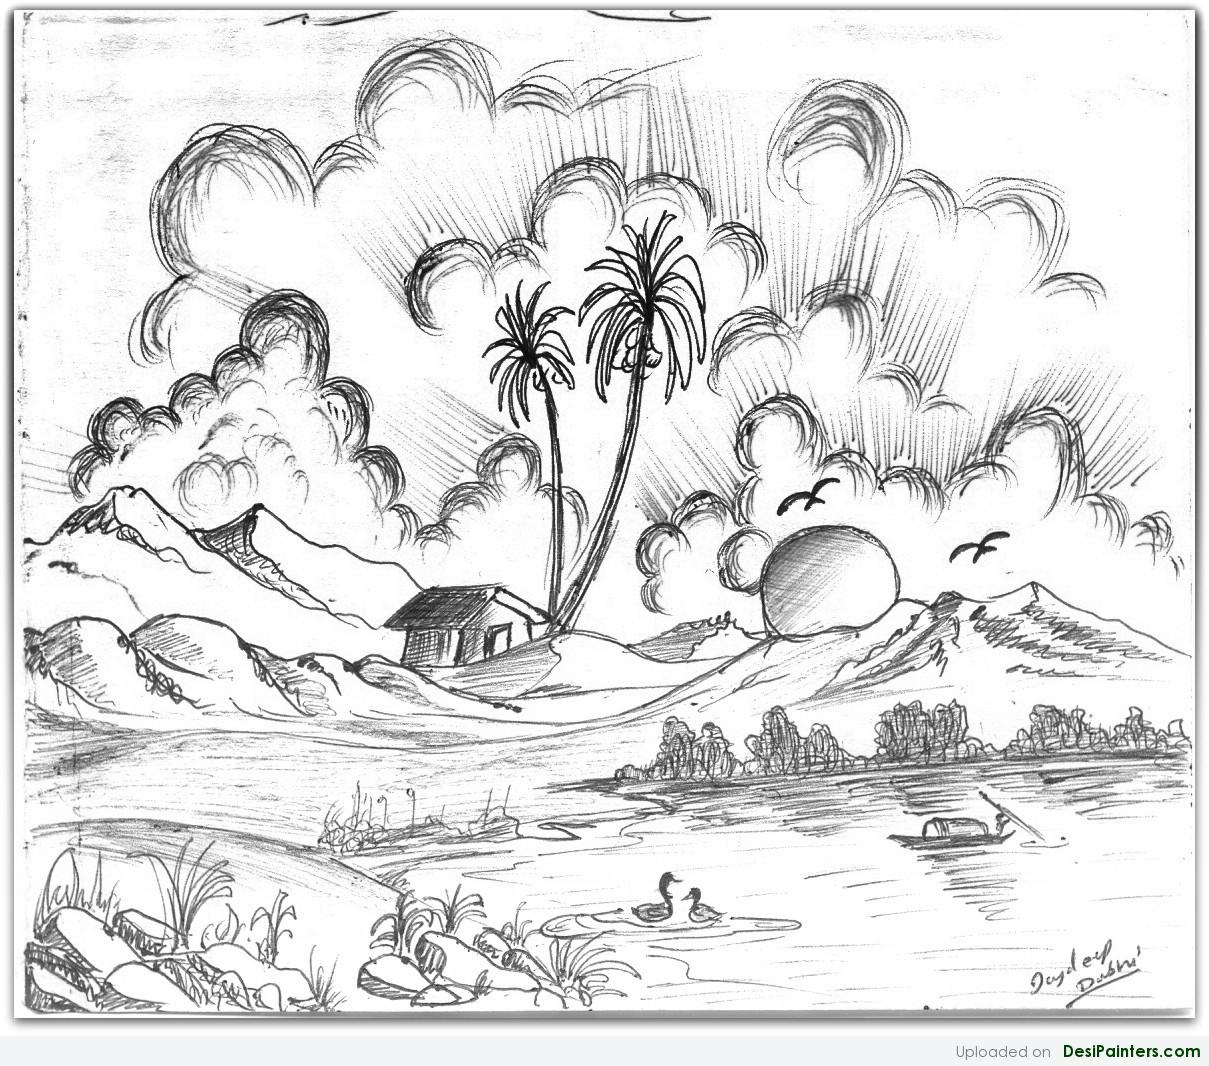 Drawn scenic black and white Coloring Children Drawing Sceneries Pencils